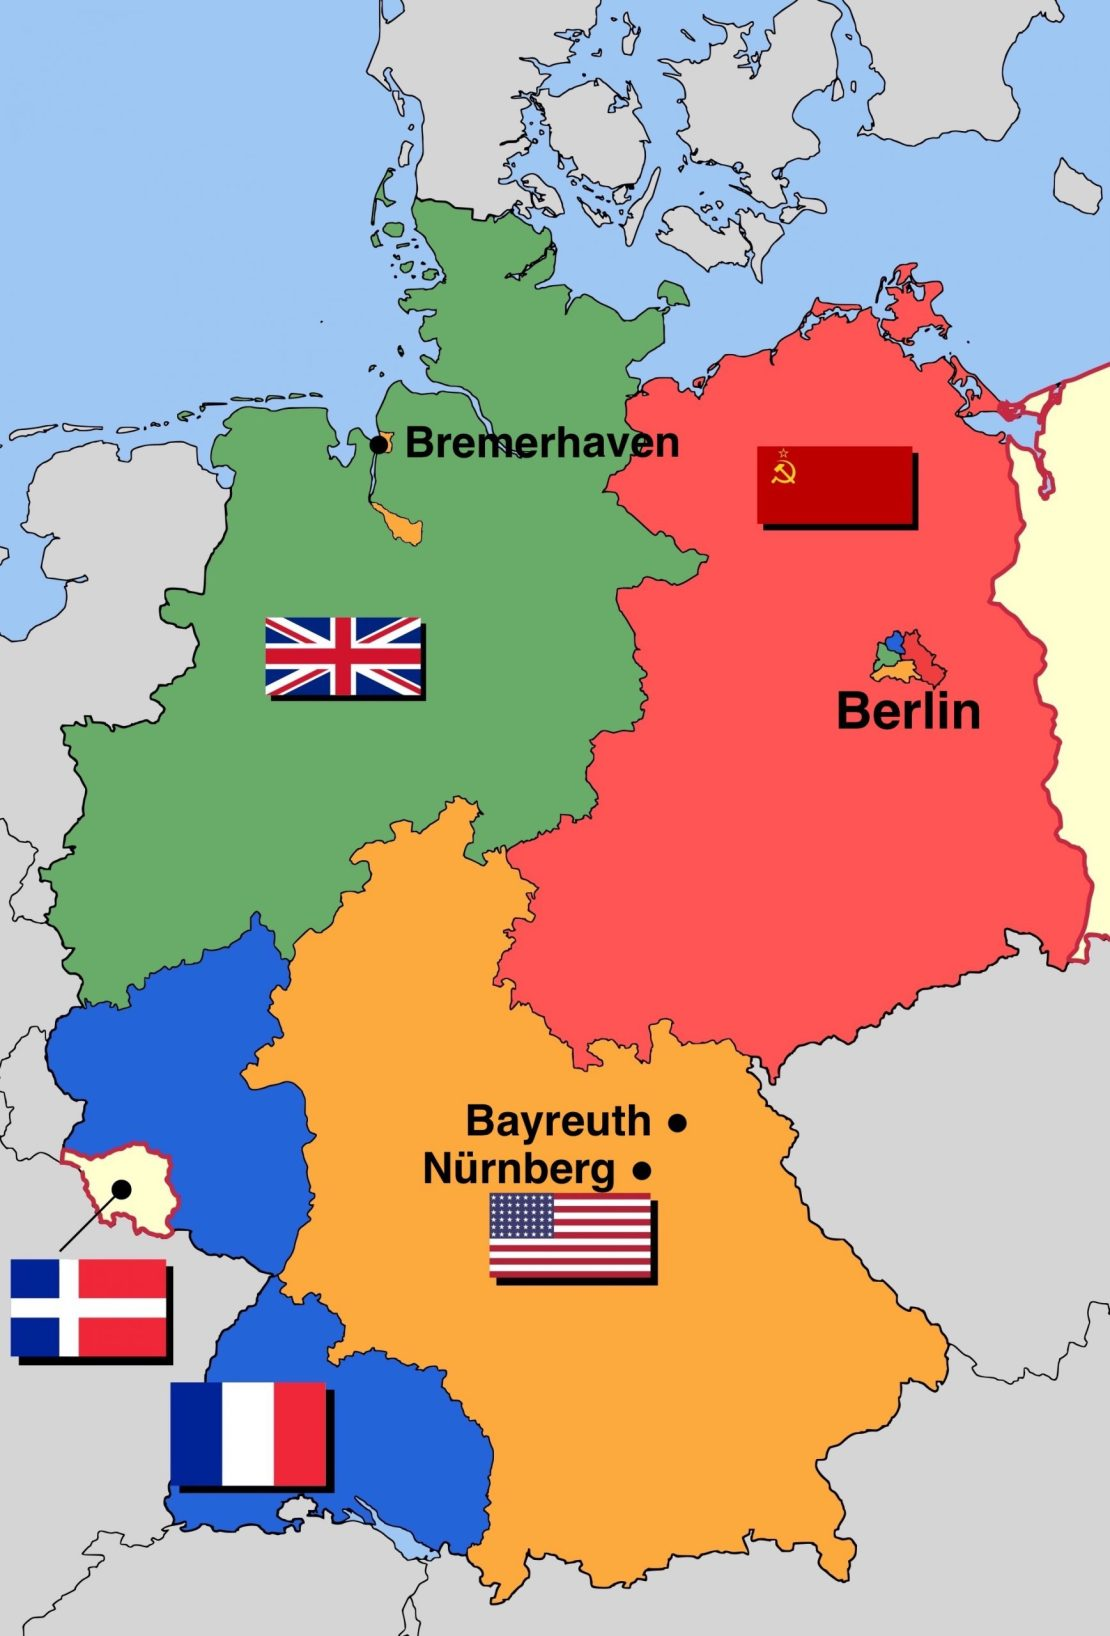 Germany's Downfall - The Berlin Wall | East & West Germany